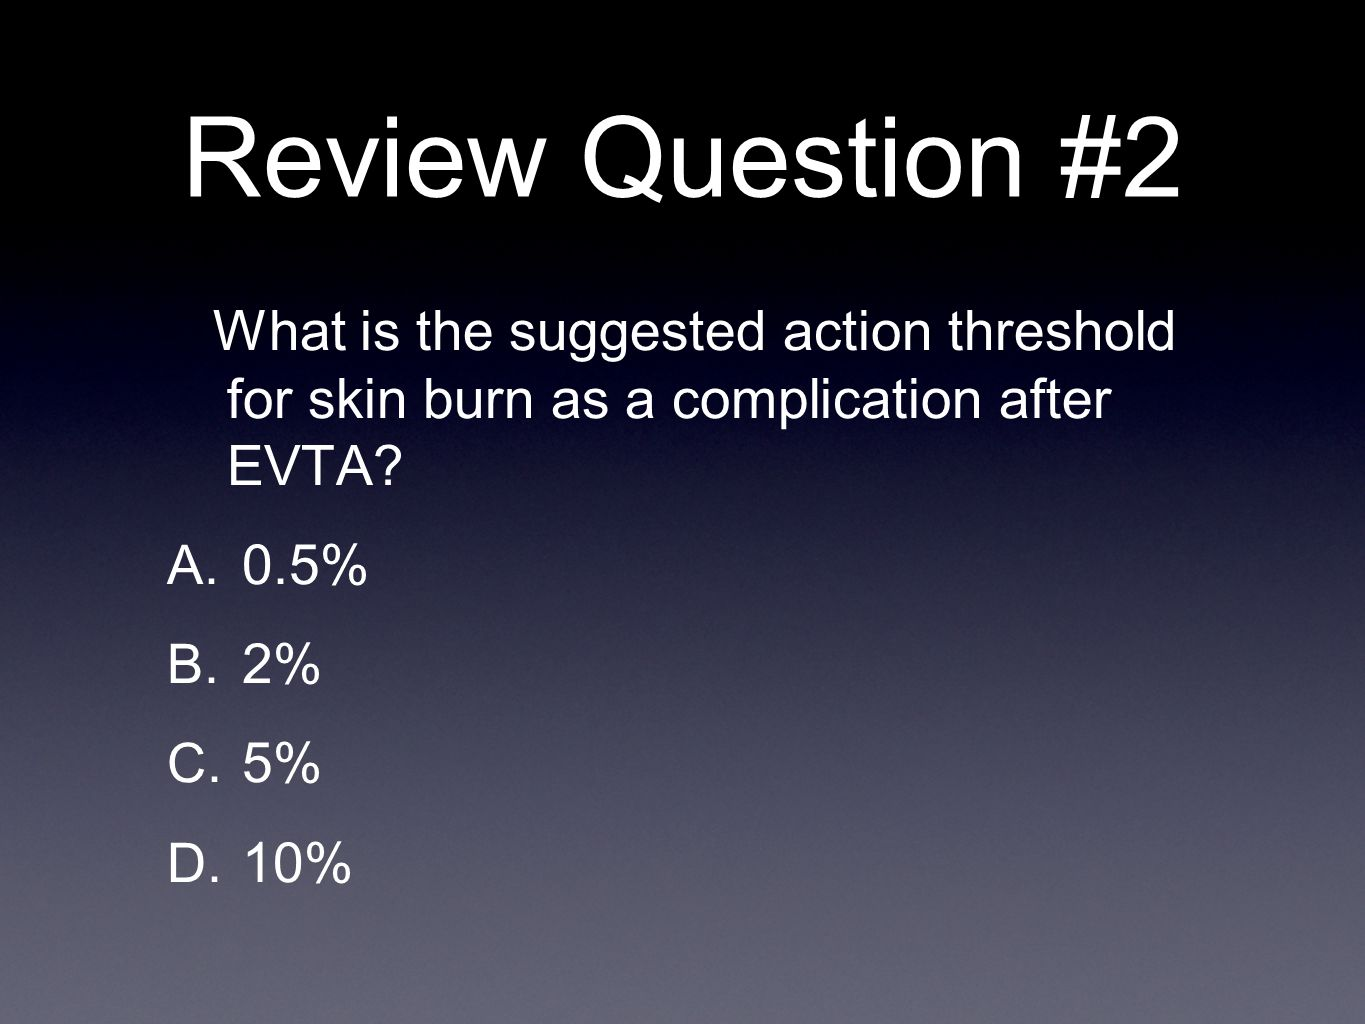 Review Question #2 What is the suggested action threshold for skin burn as a complication after EVTA? A. 0.5% B. 2% C. 5% D. 10%